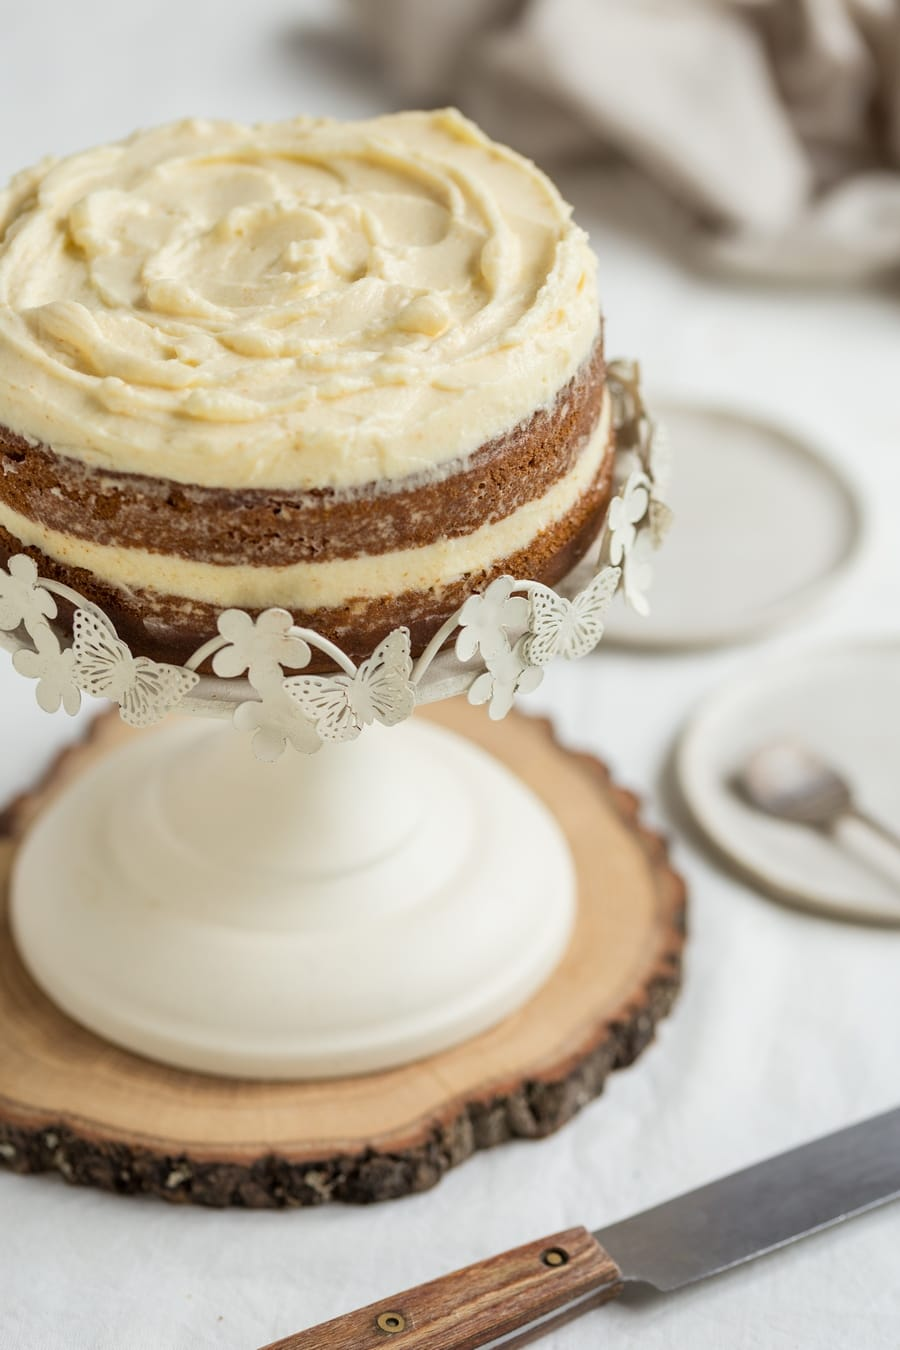 Detail of top ruffles of sweet potato cake with brown butter frosting.